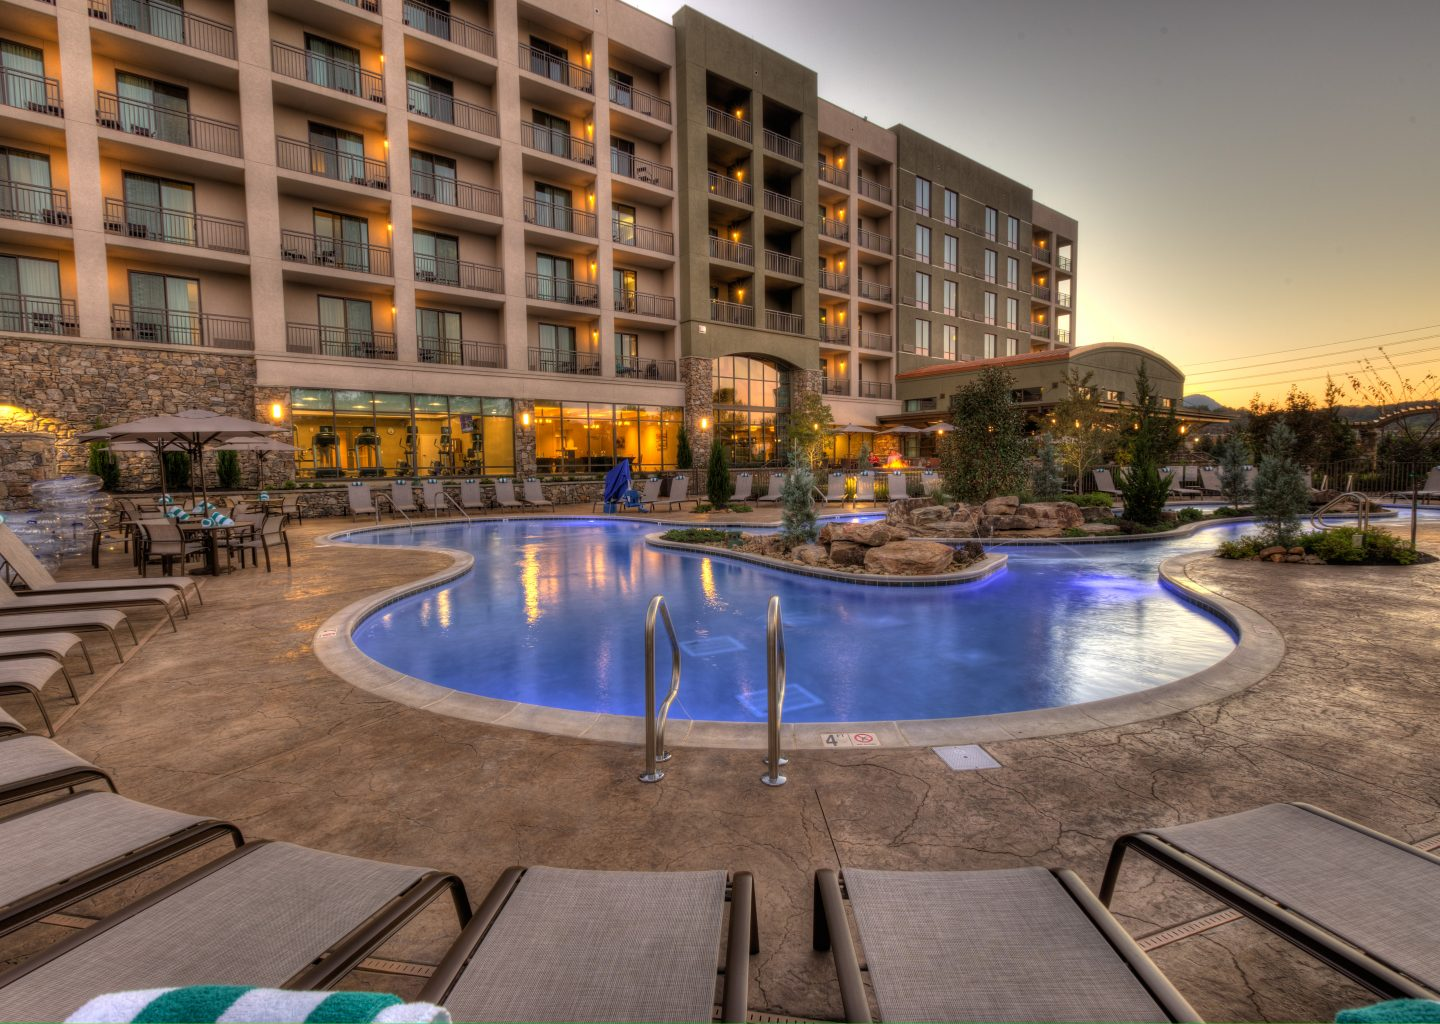 exterior view of outdoor pool area at Courtyard by Marriott Pigeon Forge